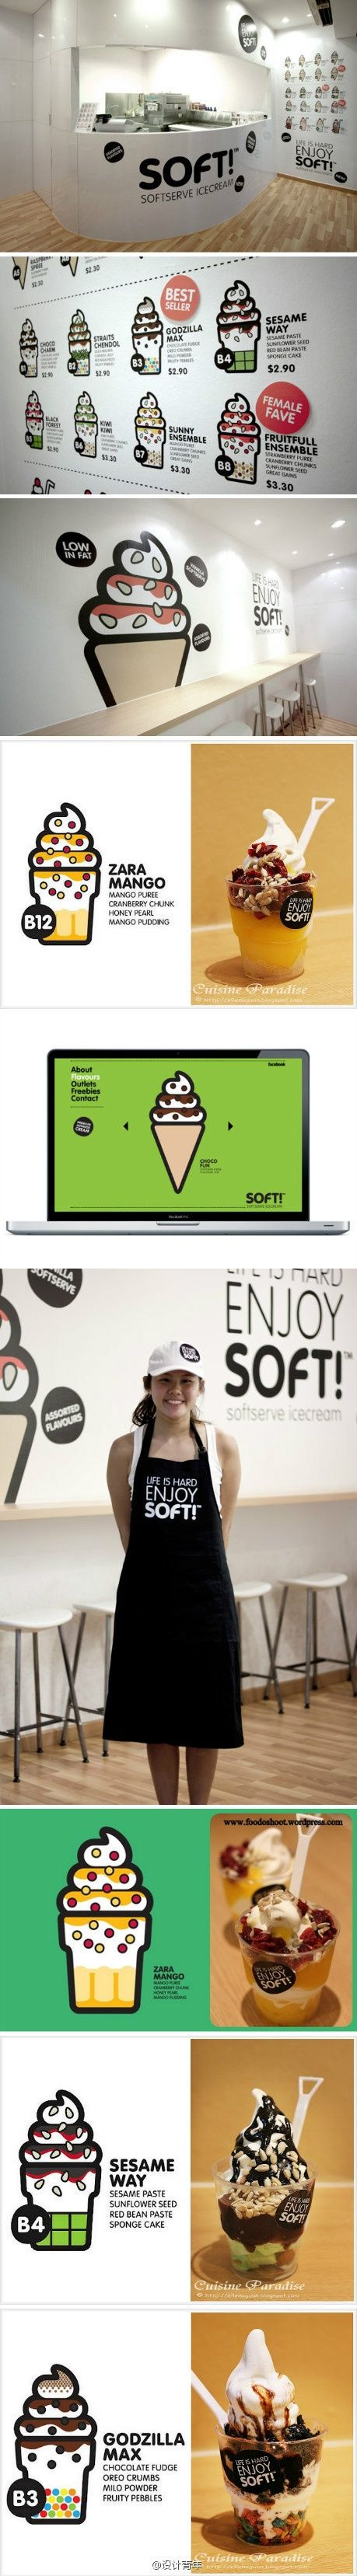 Soft! Nice branding / pack / www suite. ihnynotes: like the cartoony cones a lot #infographics